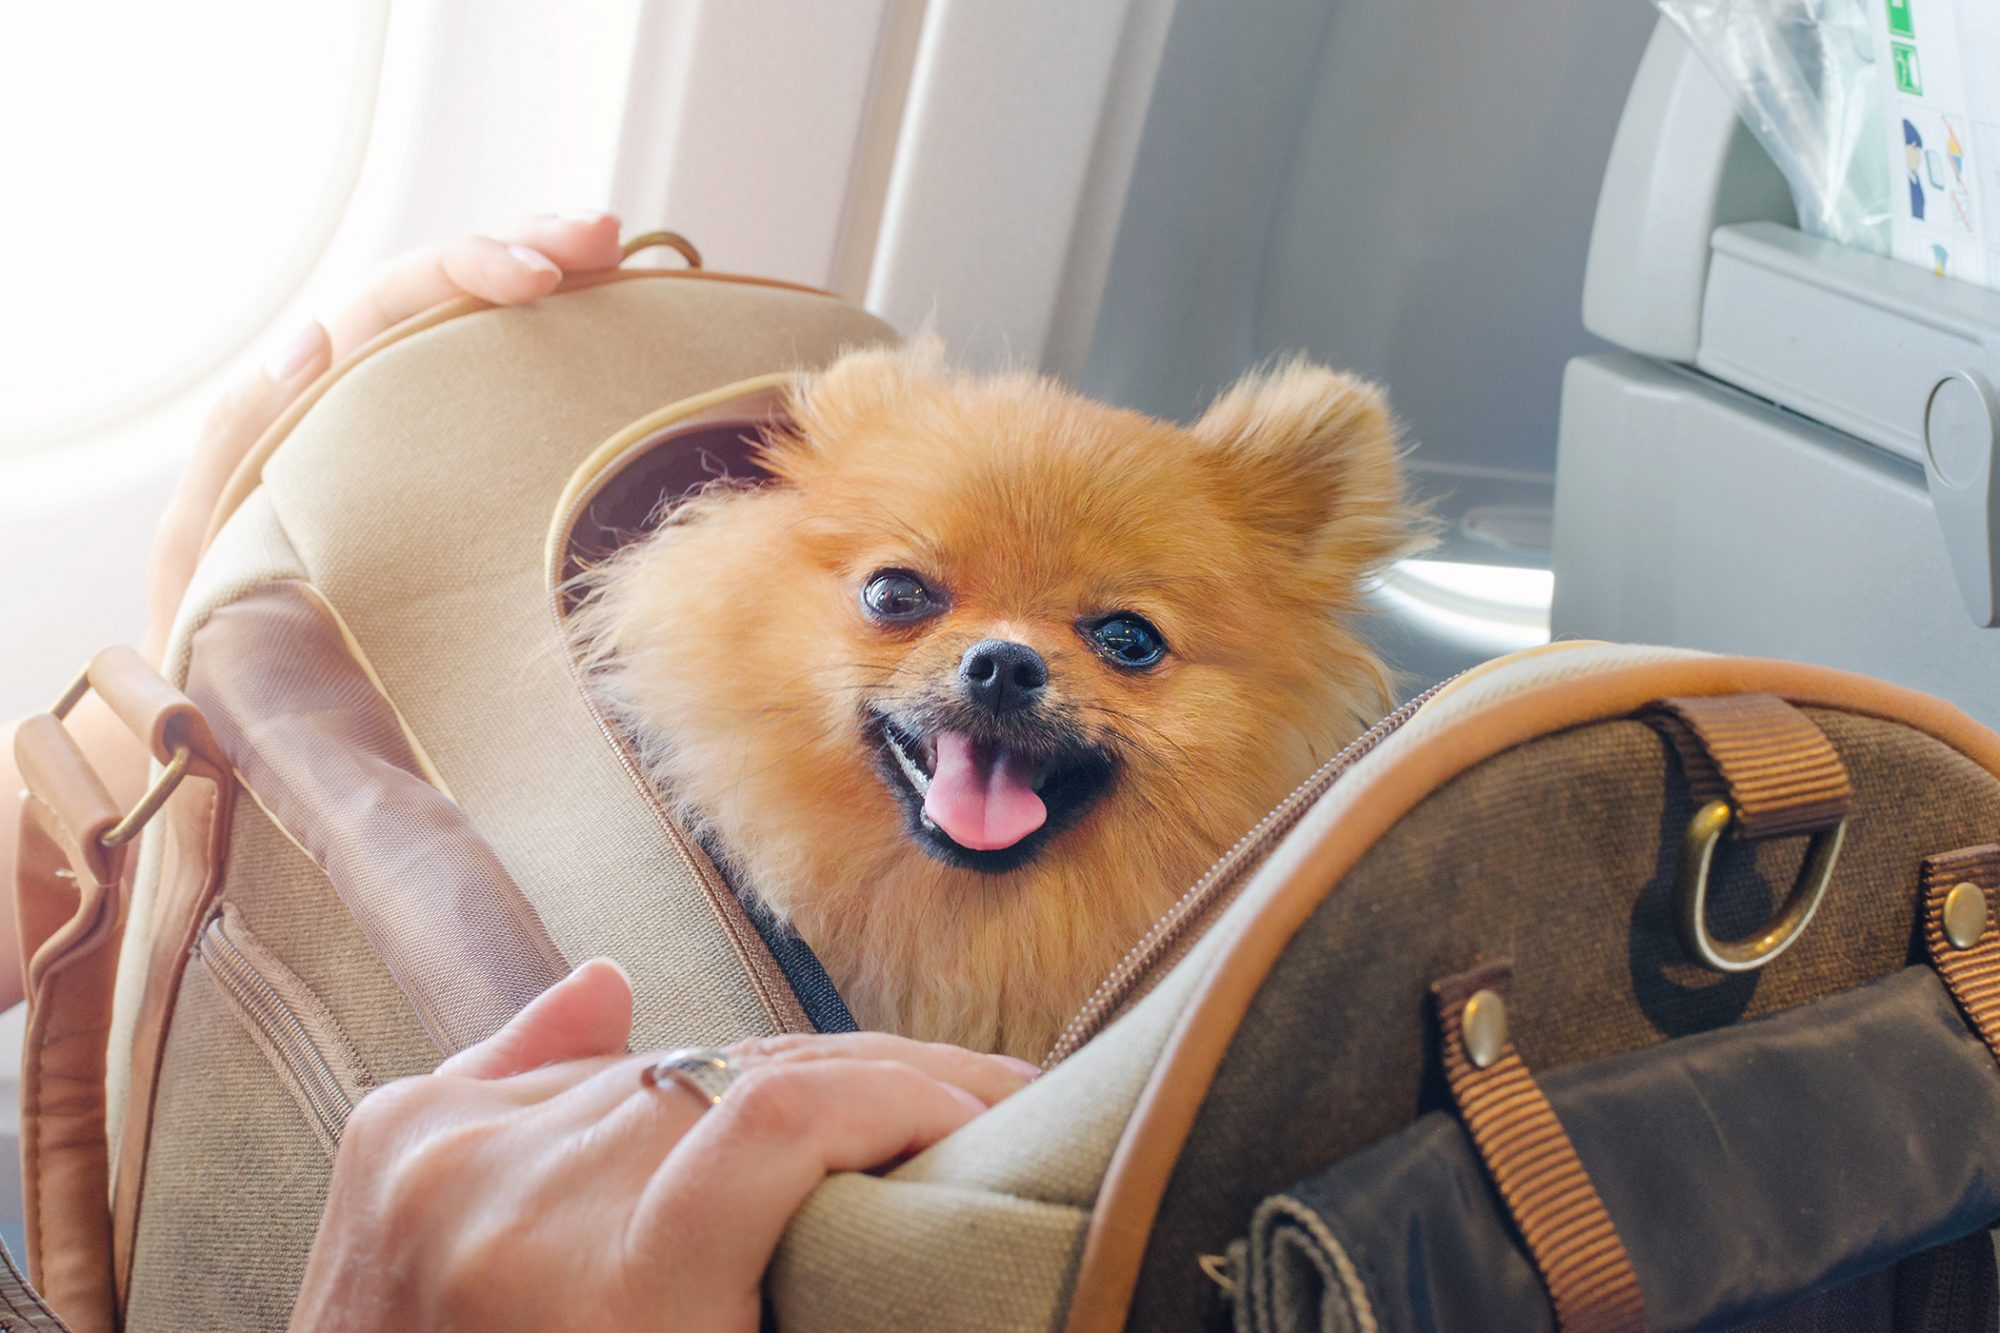 pomeranian in travel bag on plane